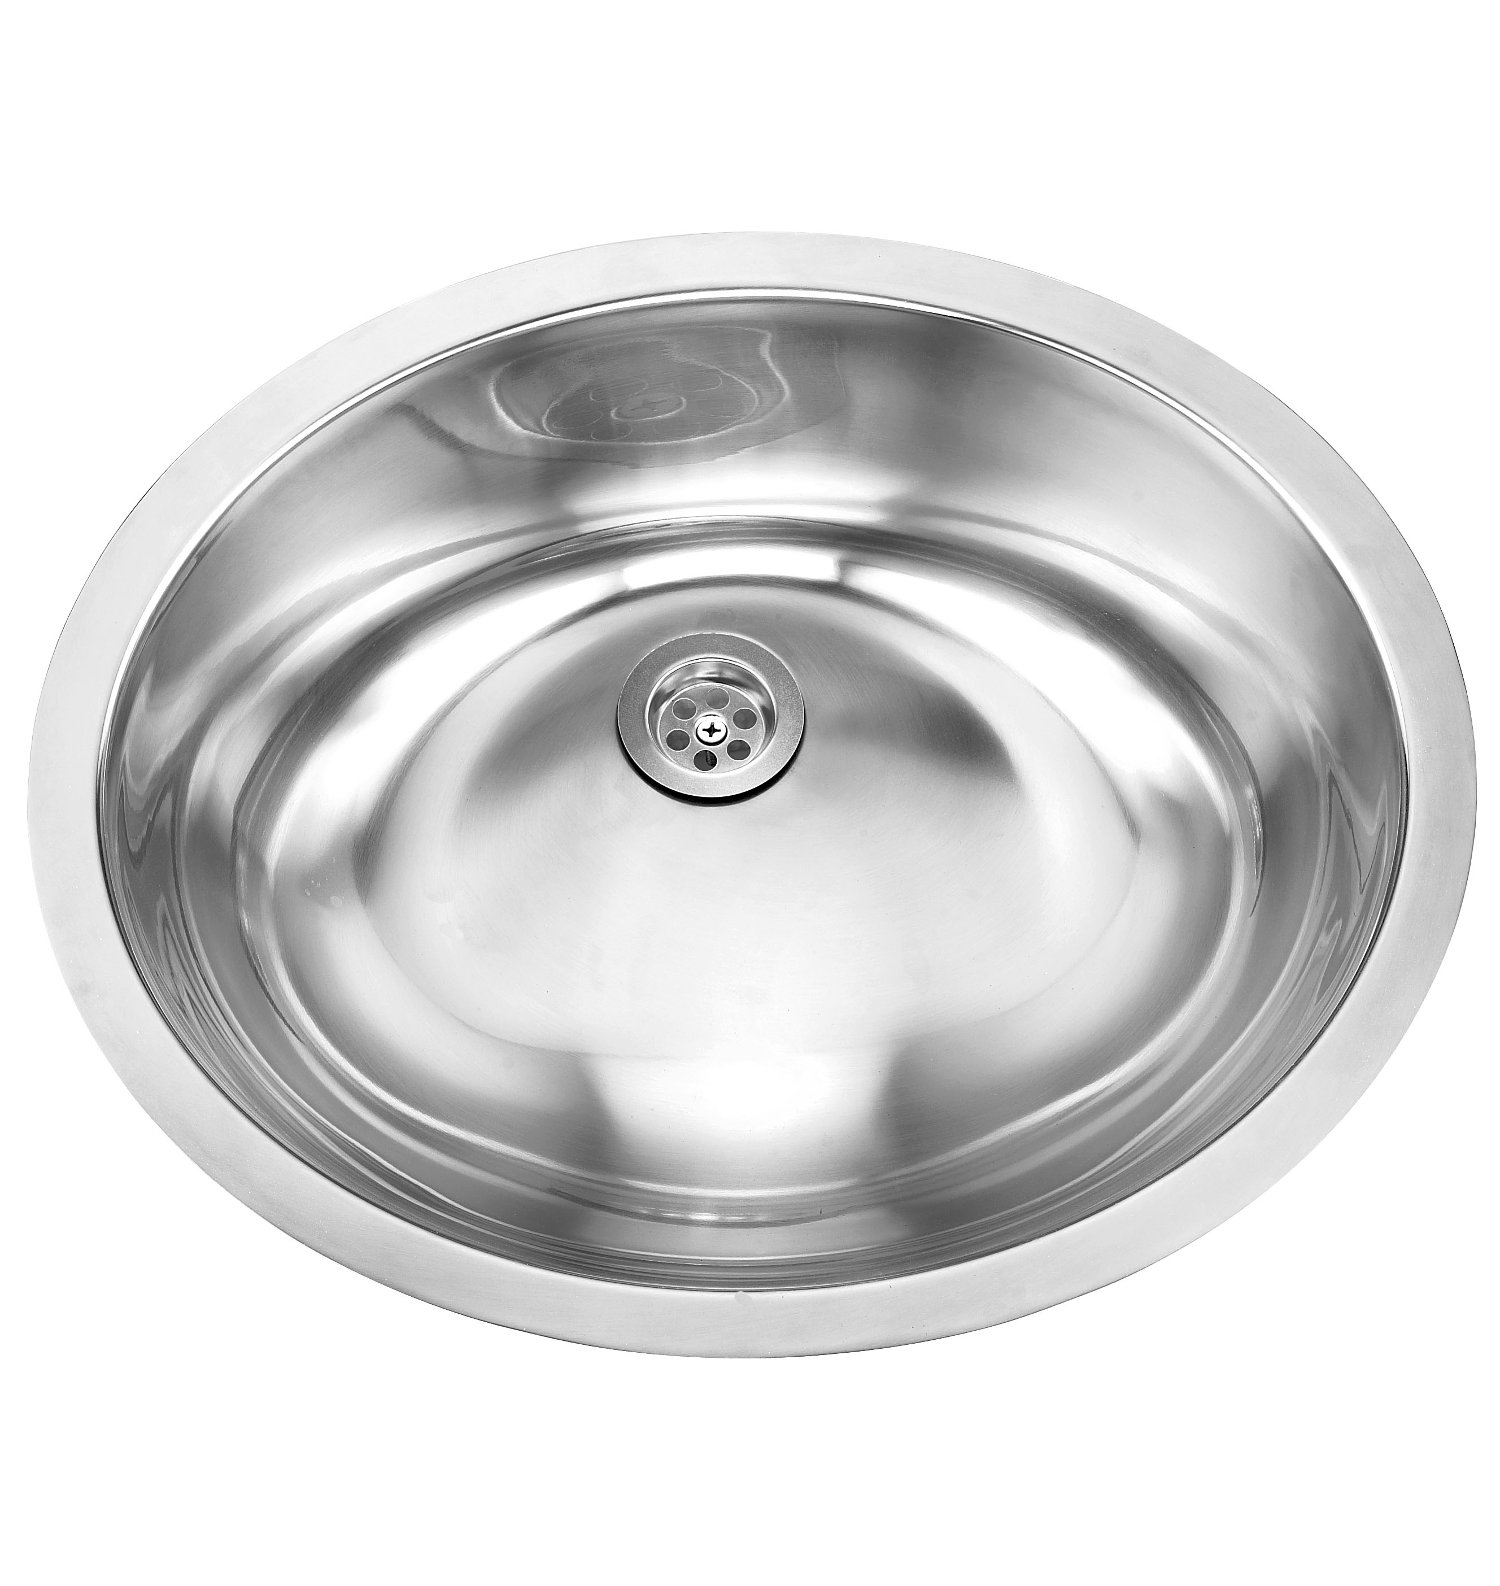 Single Bowl Undermount Deluxe Stainless Steel Bathroom Sink